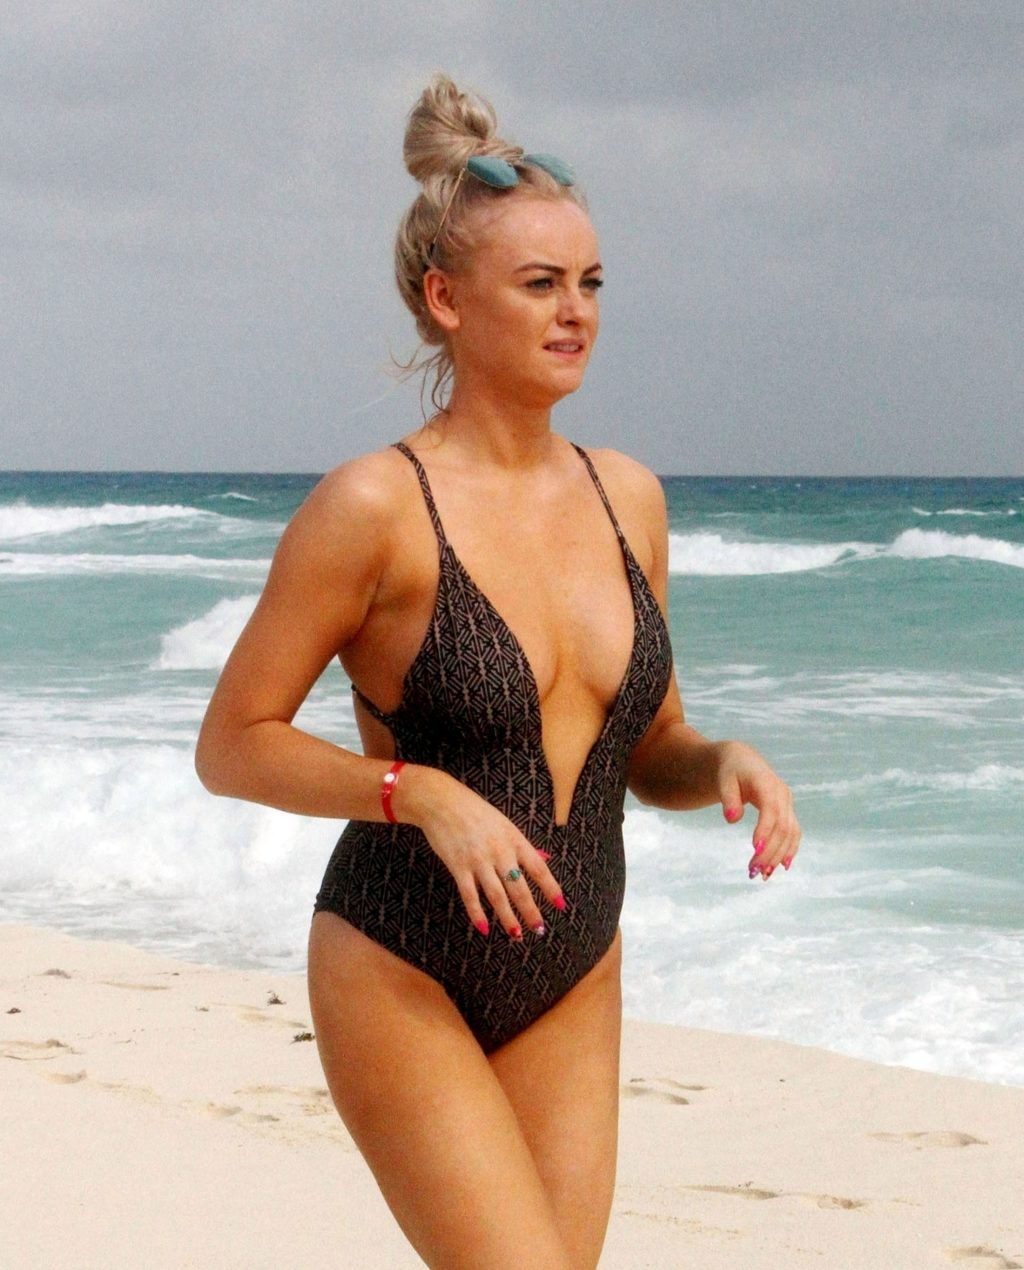 Katie McGlynn Shows Off Her Sexy Body in a Black Swimsuit (10 Photos)